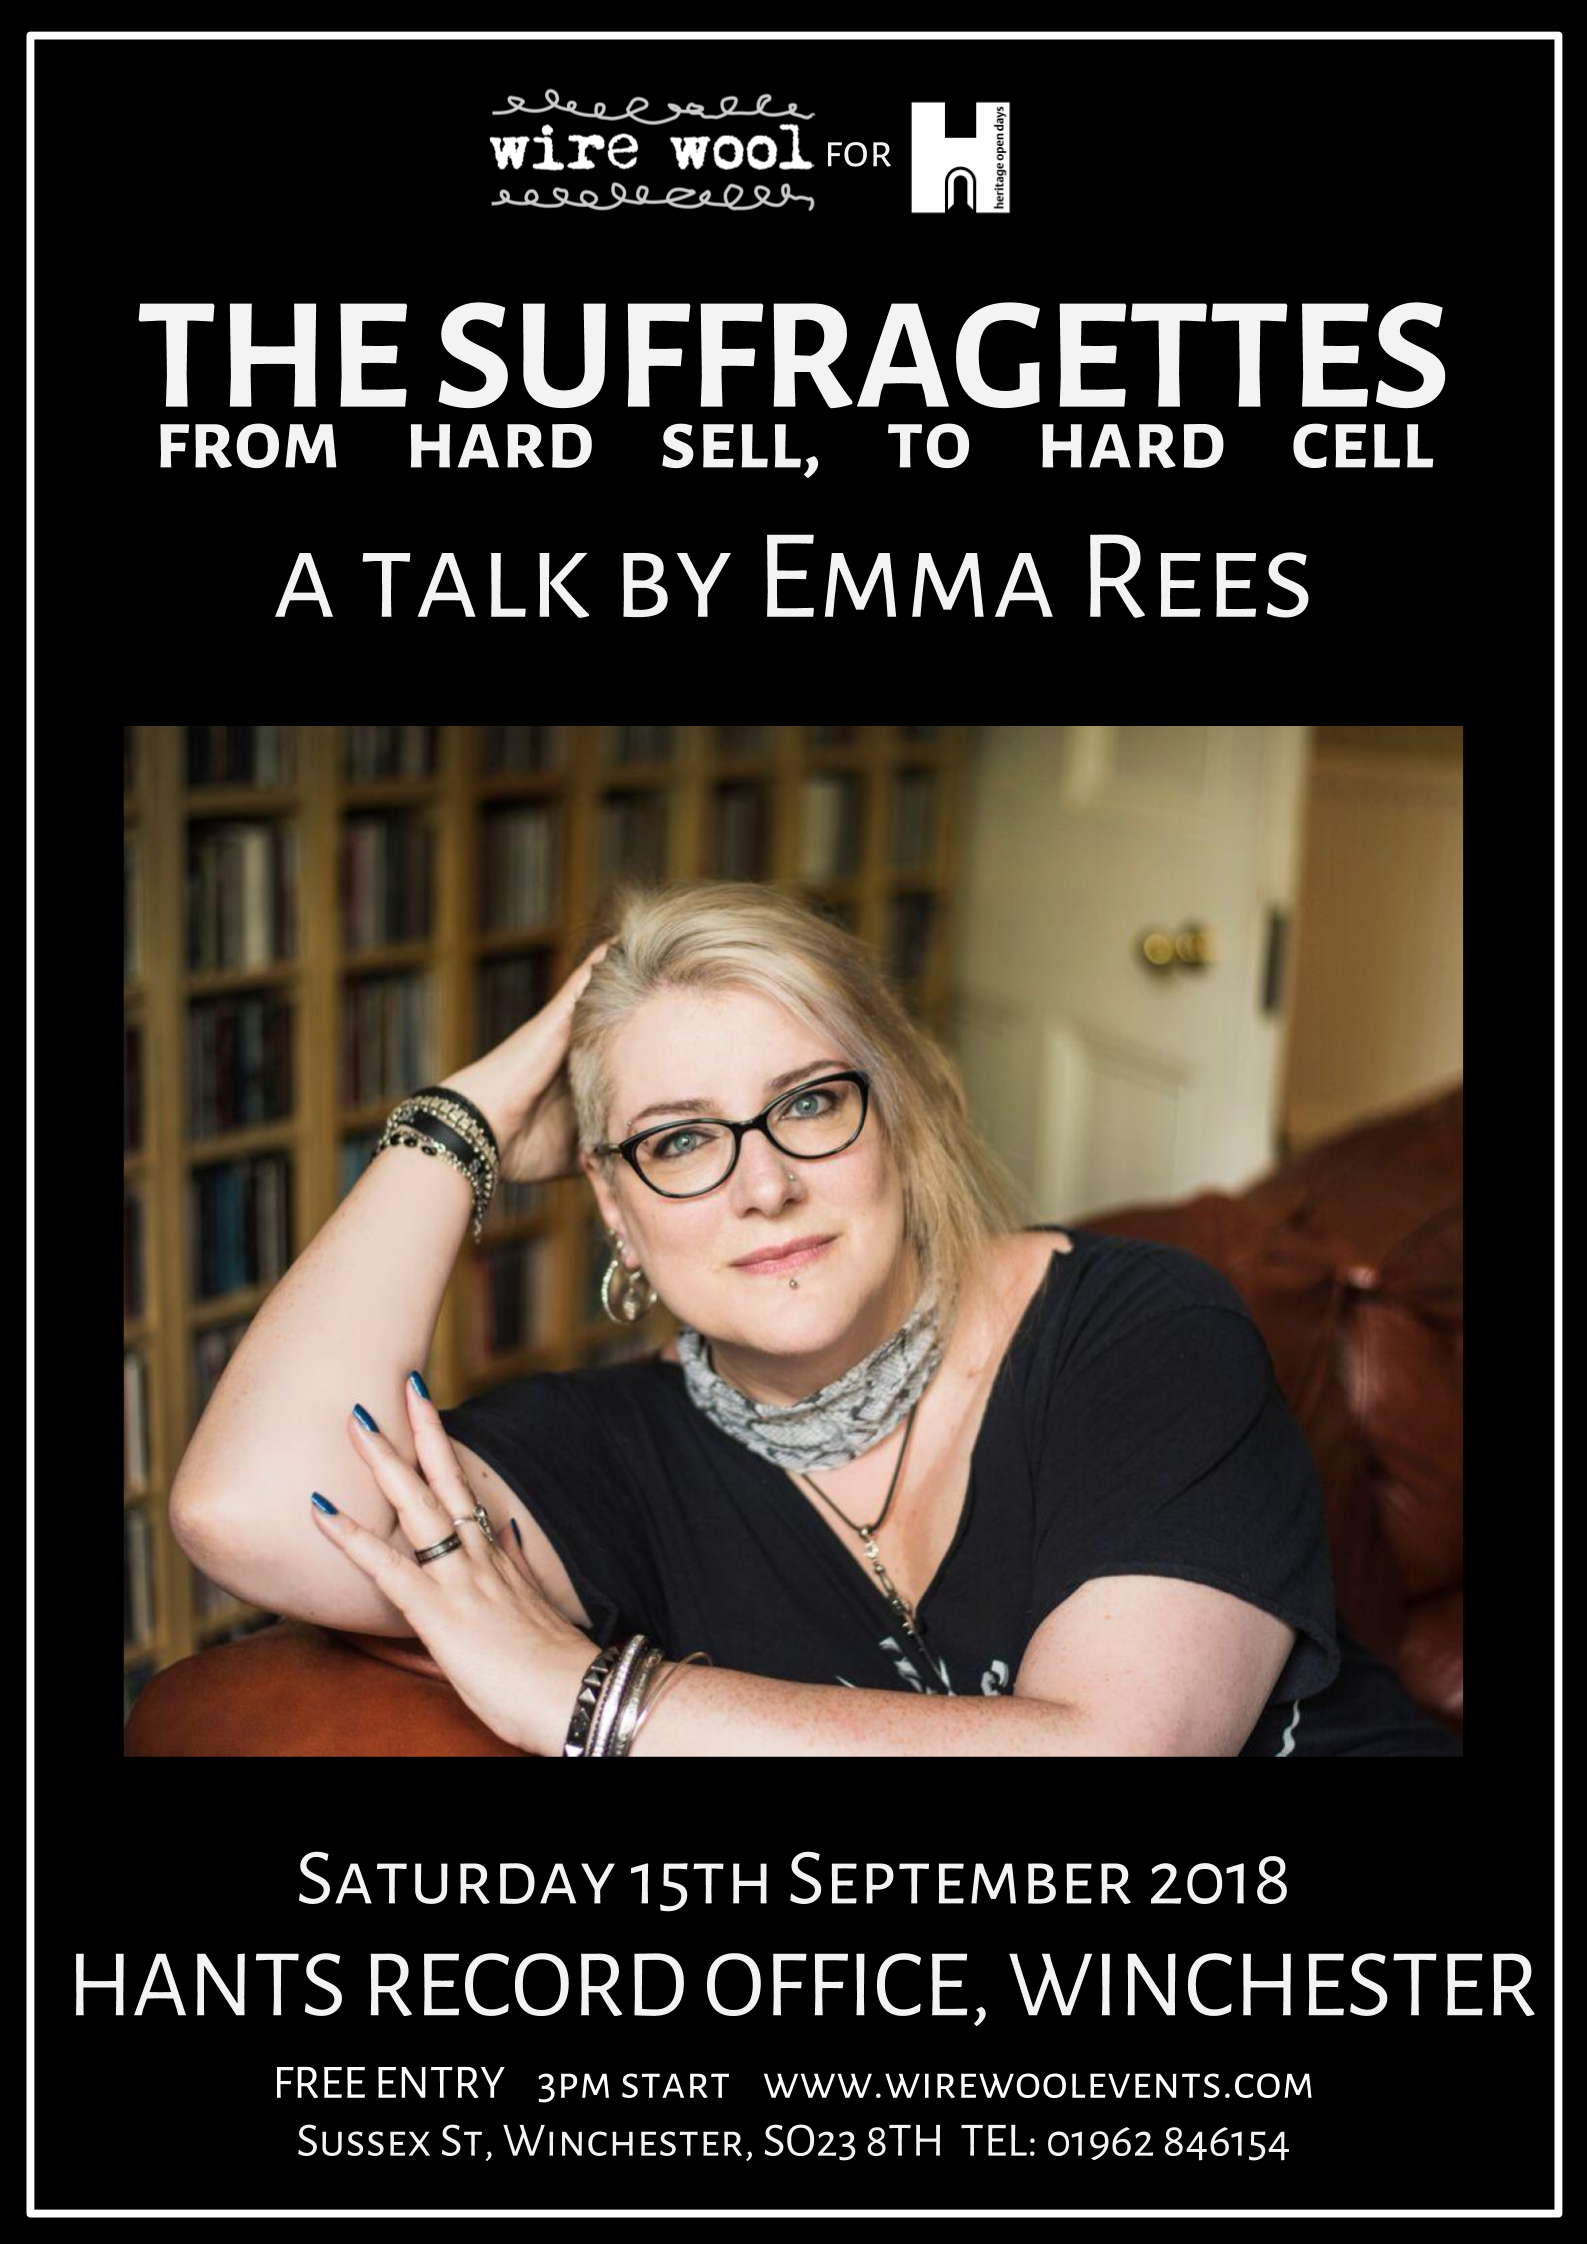 The Suffragettes – From Hard Sell, To Hard Cell: a talk by Emma Rees  Saturday, September 15, 2018 3:00pm Hampshire Record Office